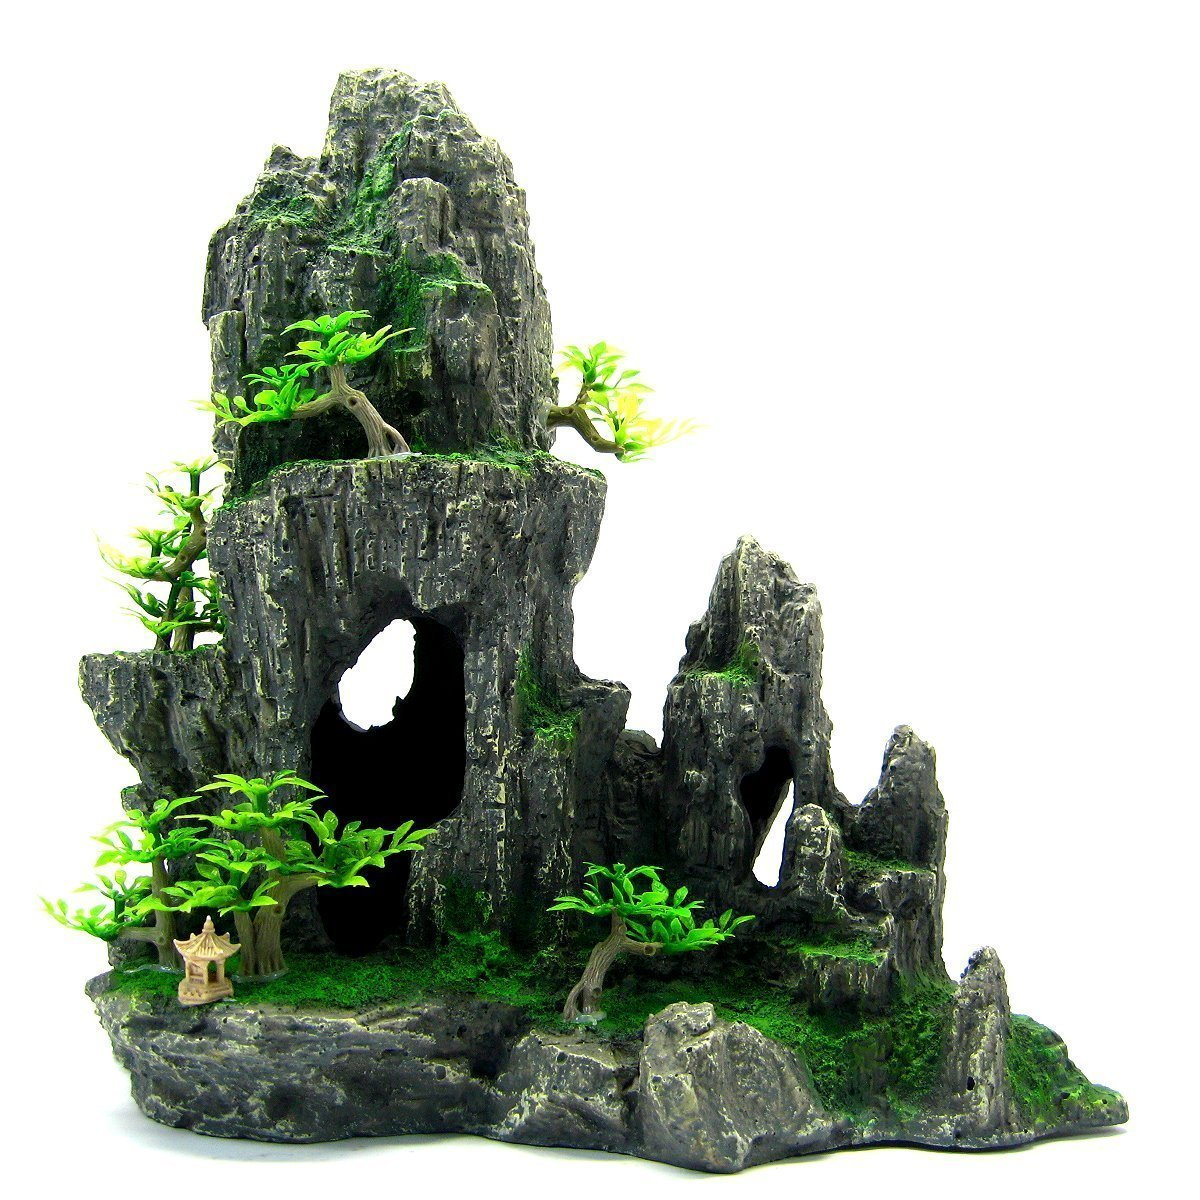 Mountain View Aquarium Ornament tree 29x15x28.5cm - Rock Cave house decoration by Aquarium Equip